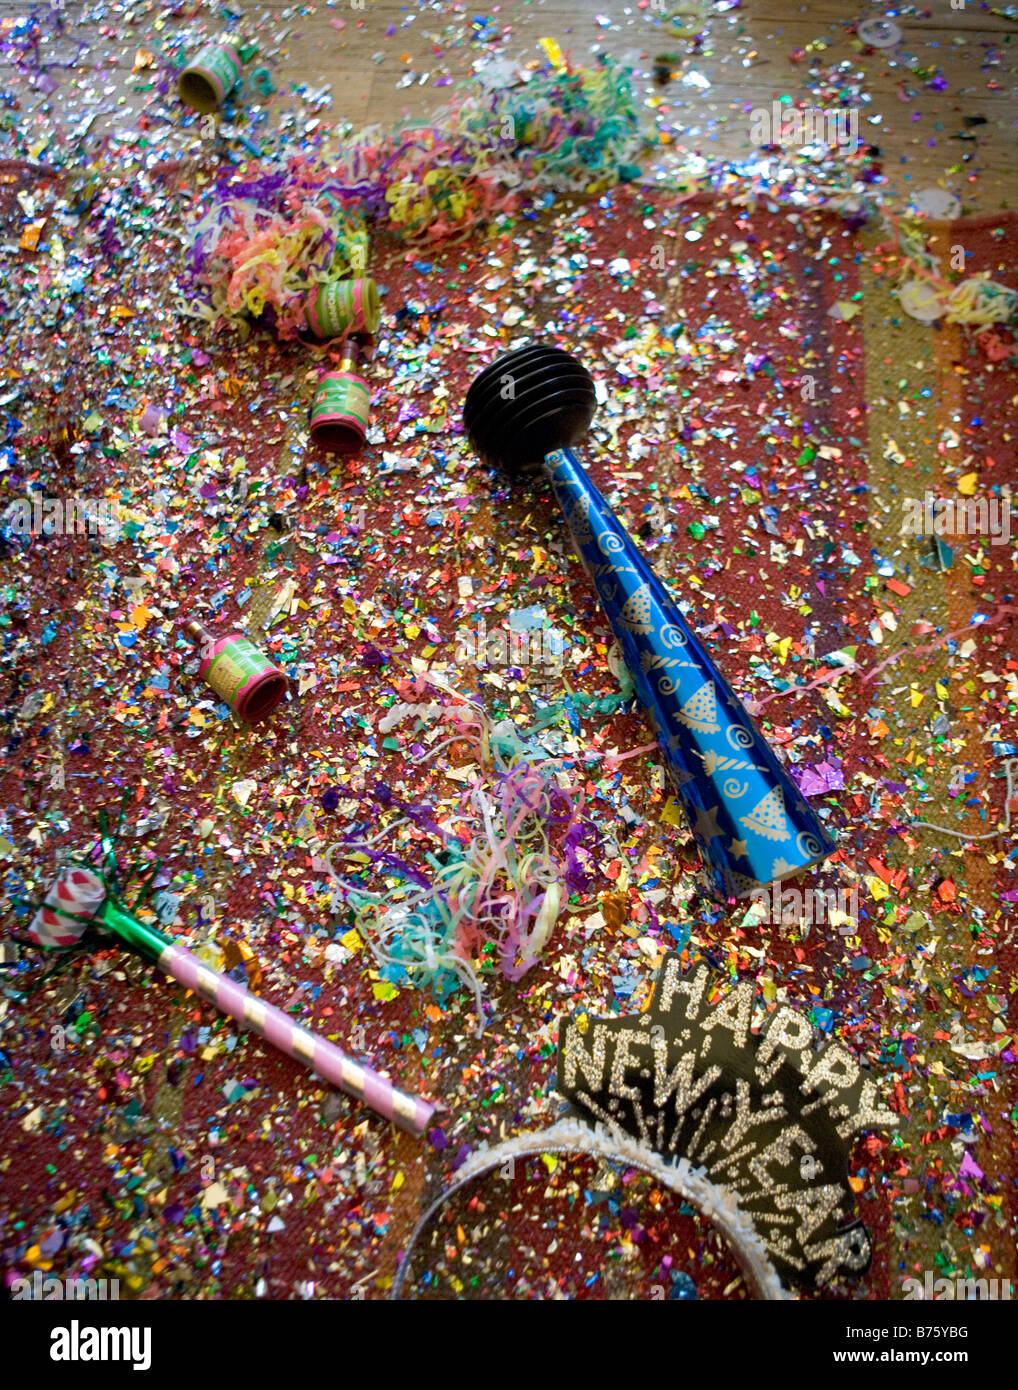 Party Poppers And Streamers Stock Photo - Download Image ... |Party Poppers Streamers